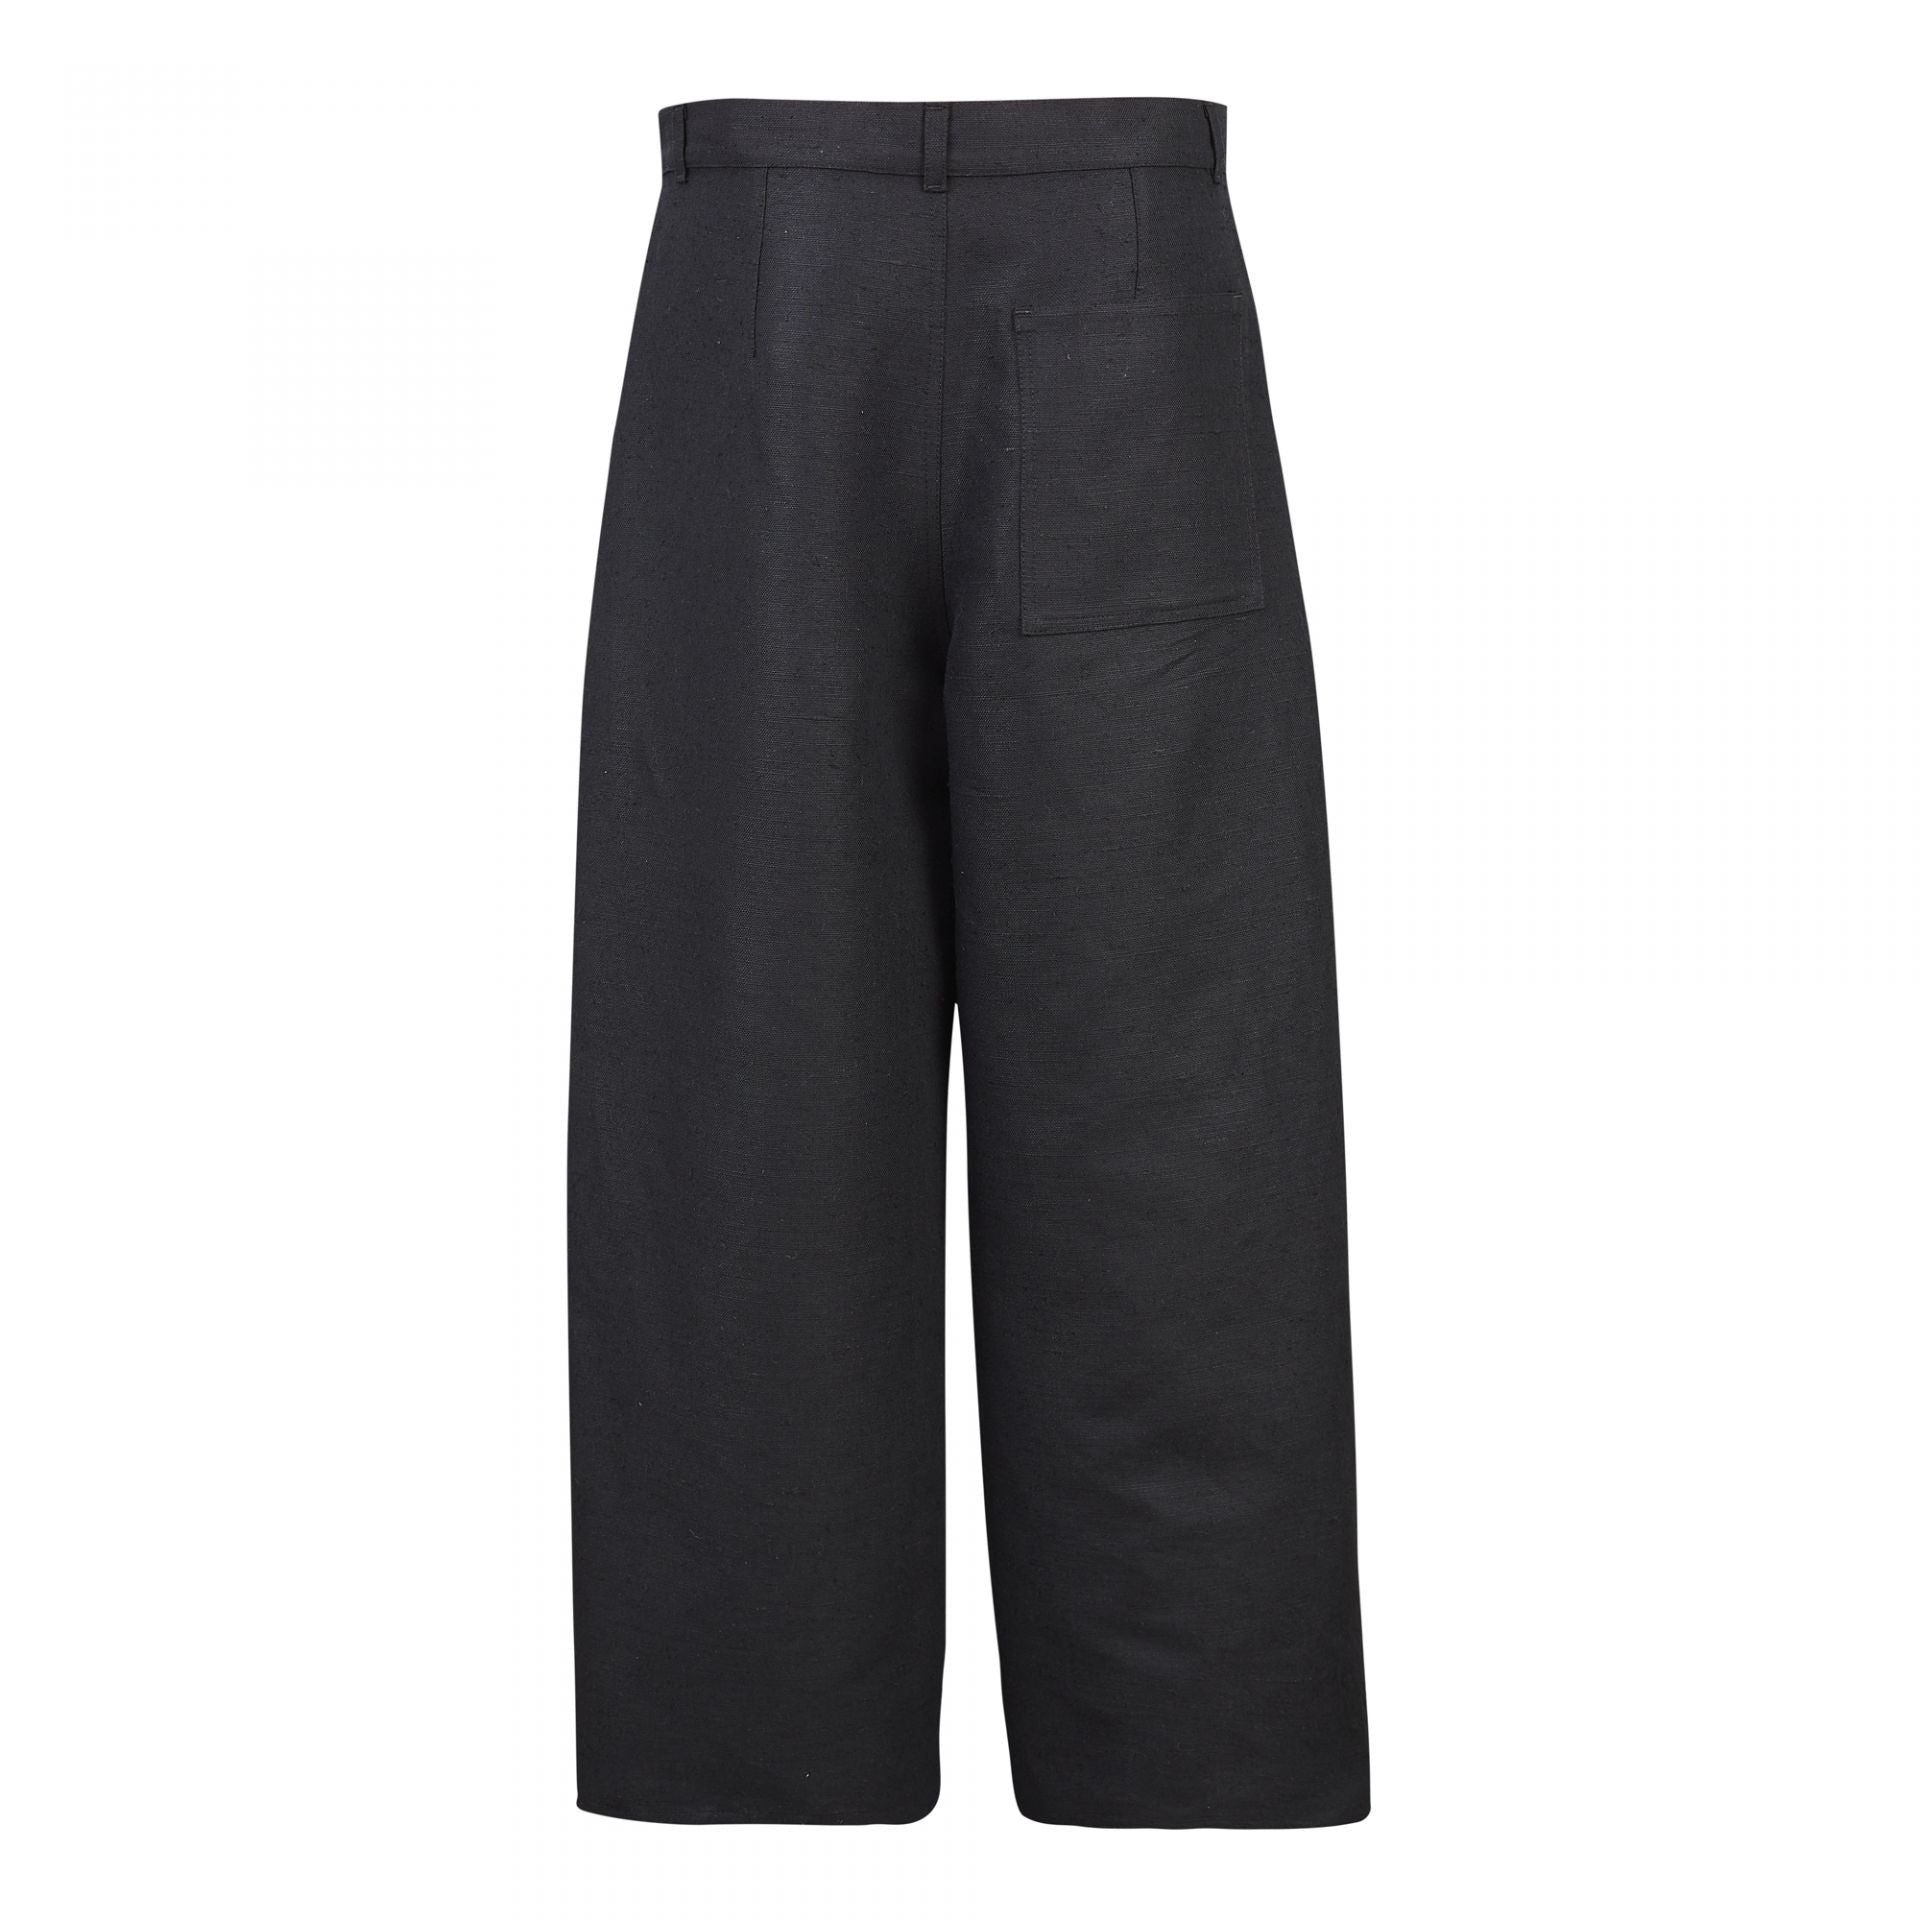 ROUND TROUSERS BLACK